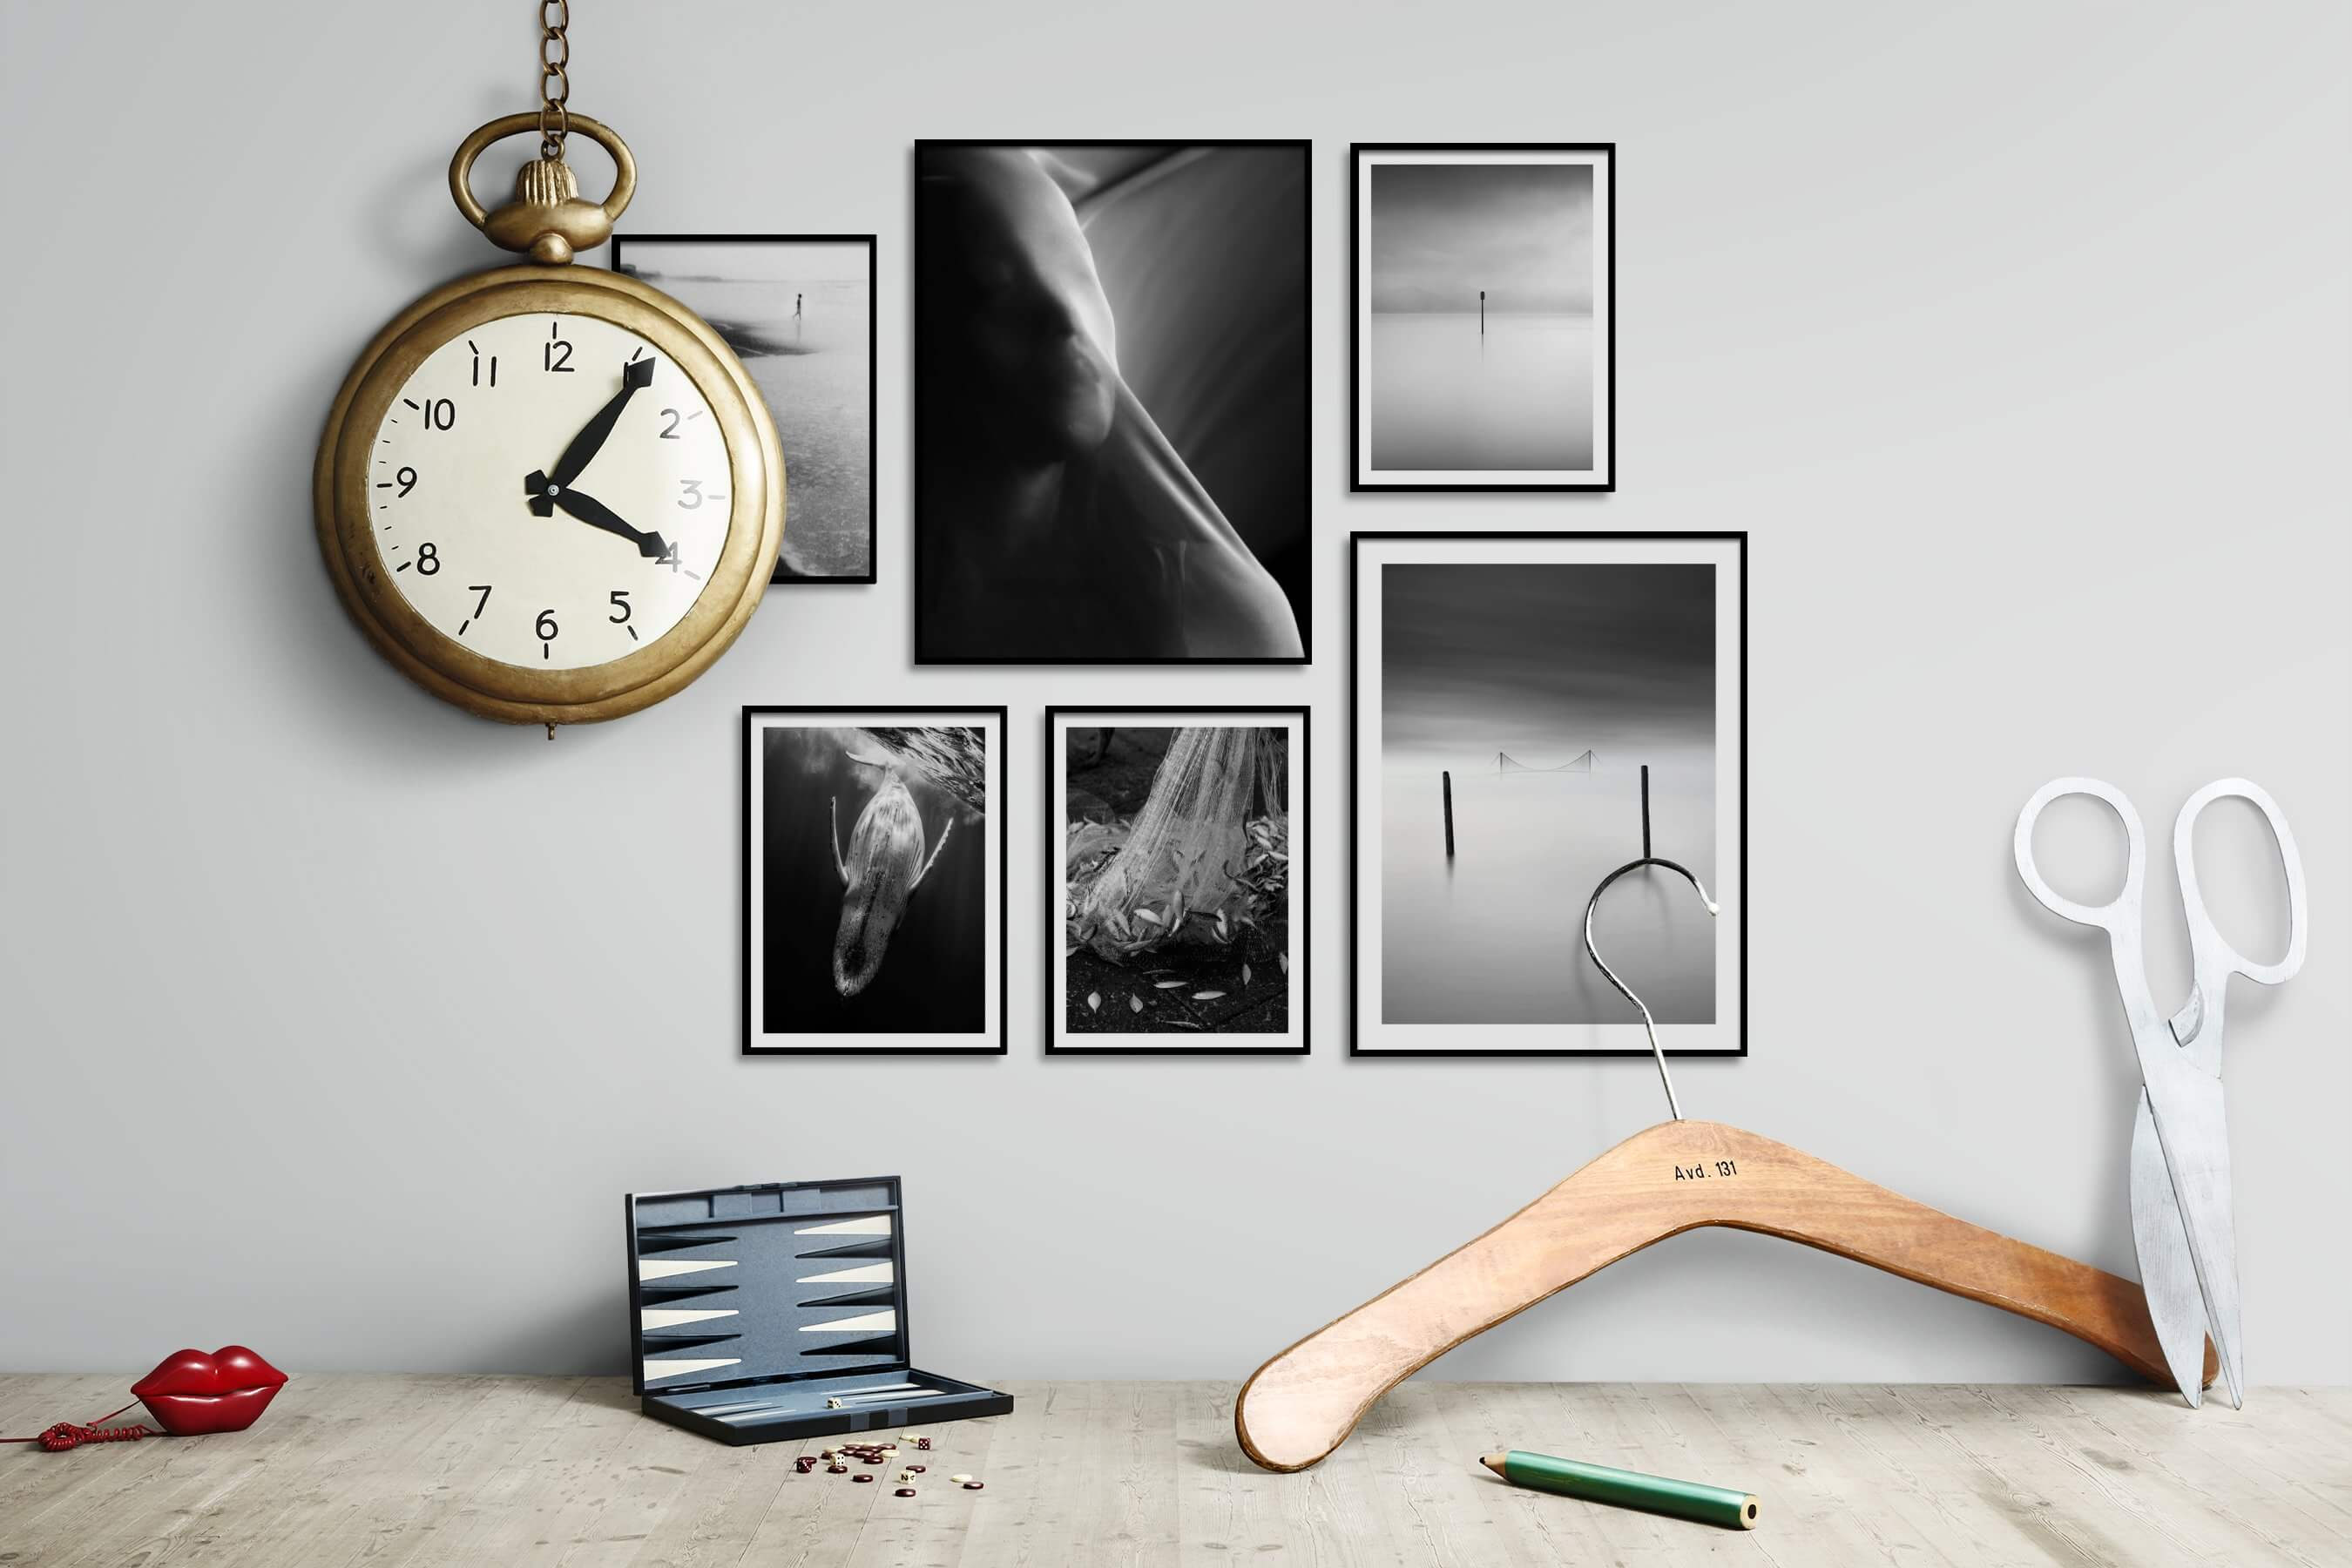 Gallery wall idea with six framed pictures arranged on a wall depicting Black & White, For the Moderate, Beach & Water, Artsy, Animals, For the Minimalist, and Mindfulness